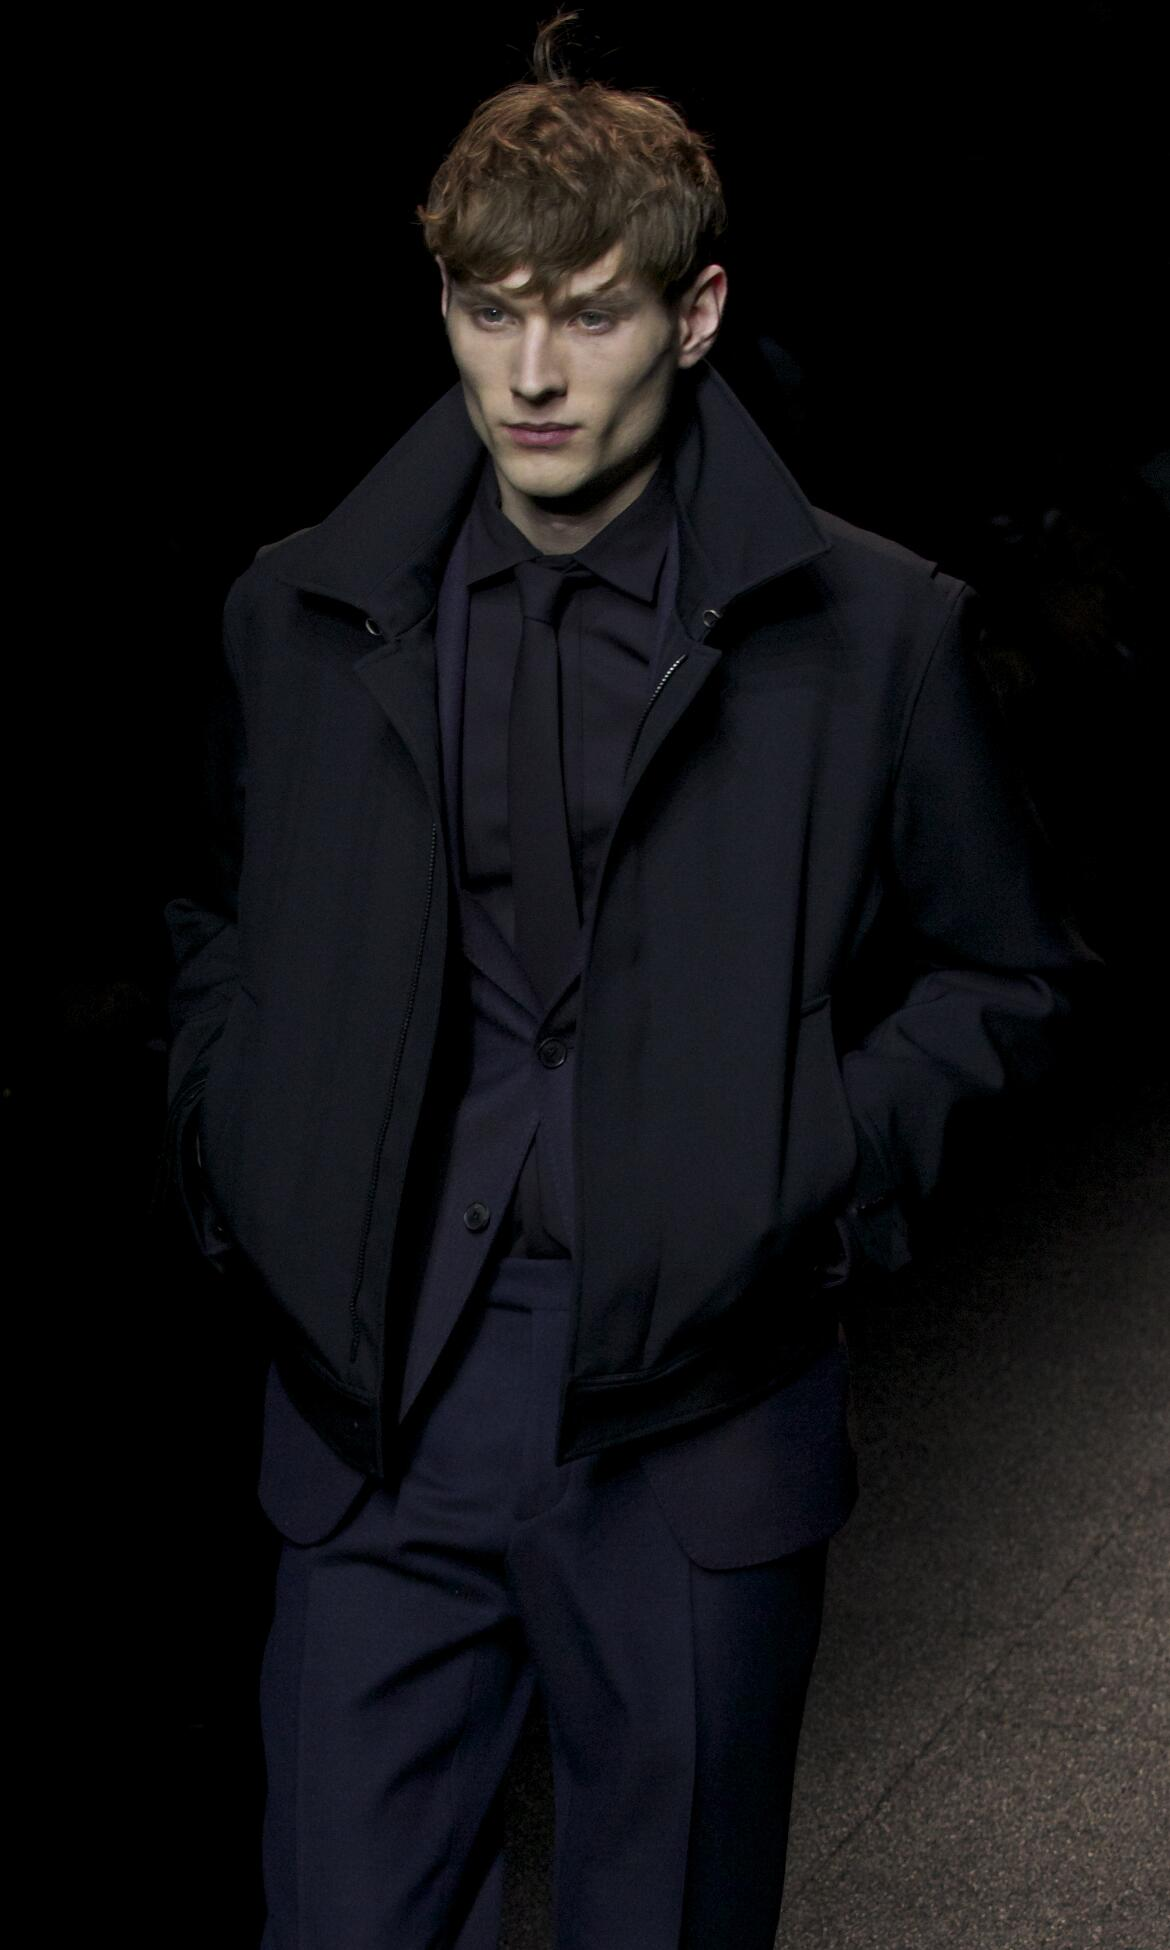 Salvatore Ferragamo Men's Collection 2013 2014